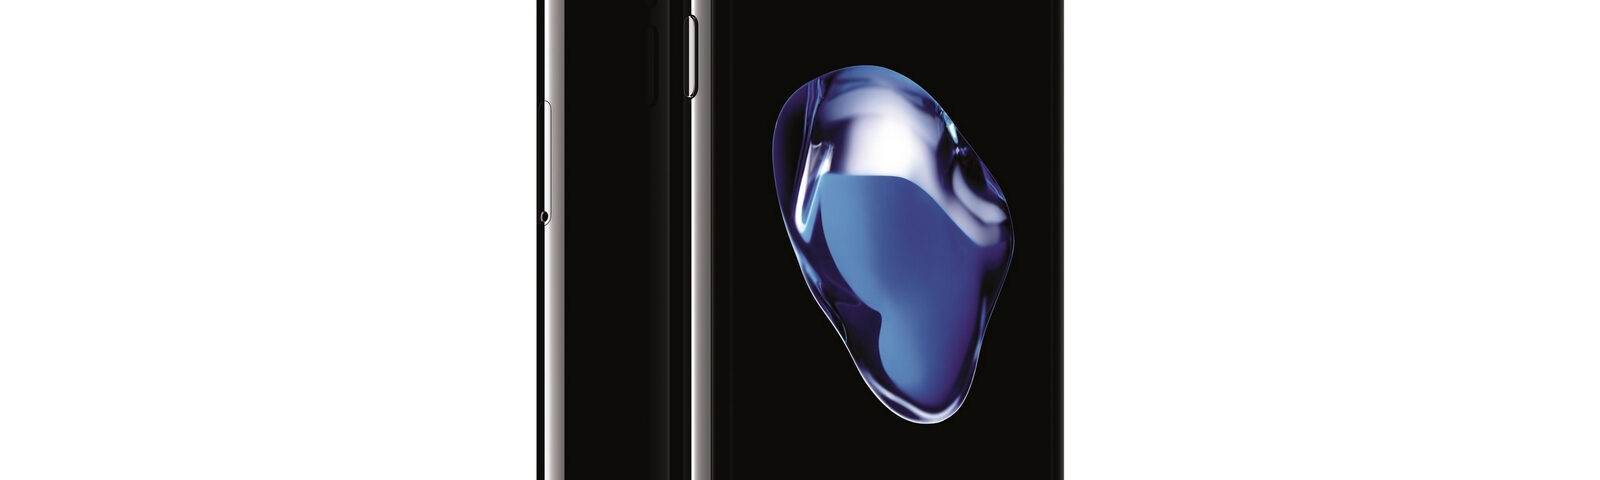 iPhone-7-Amazing-Specs-and-features-revealed-.jpg